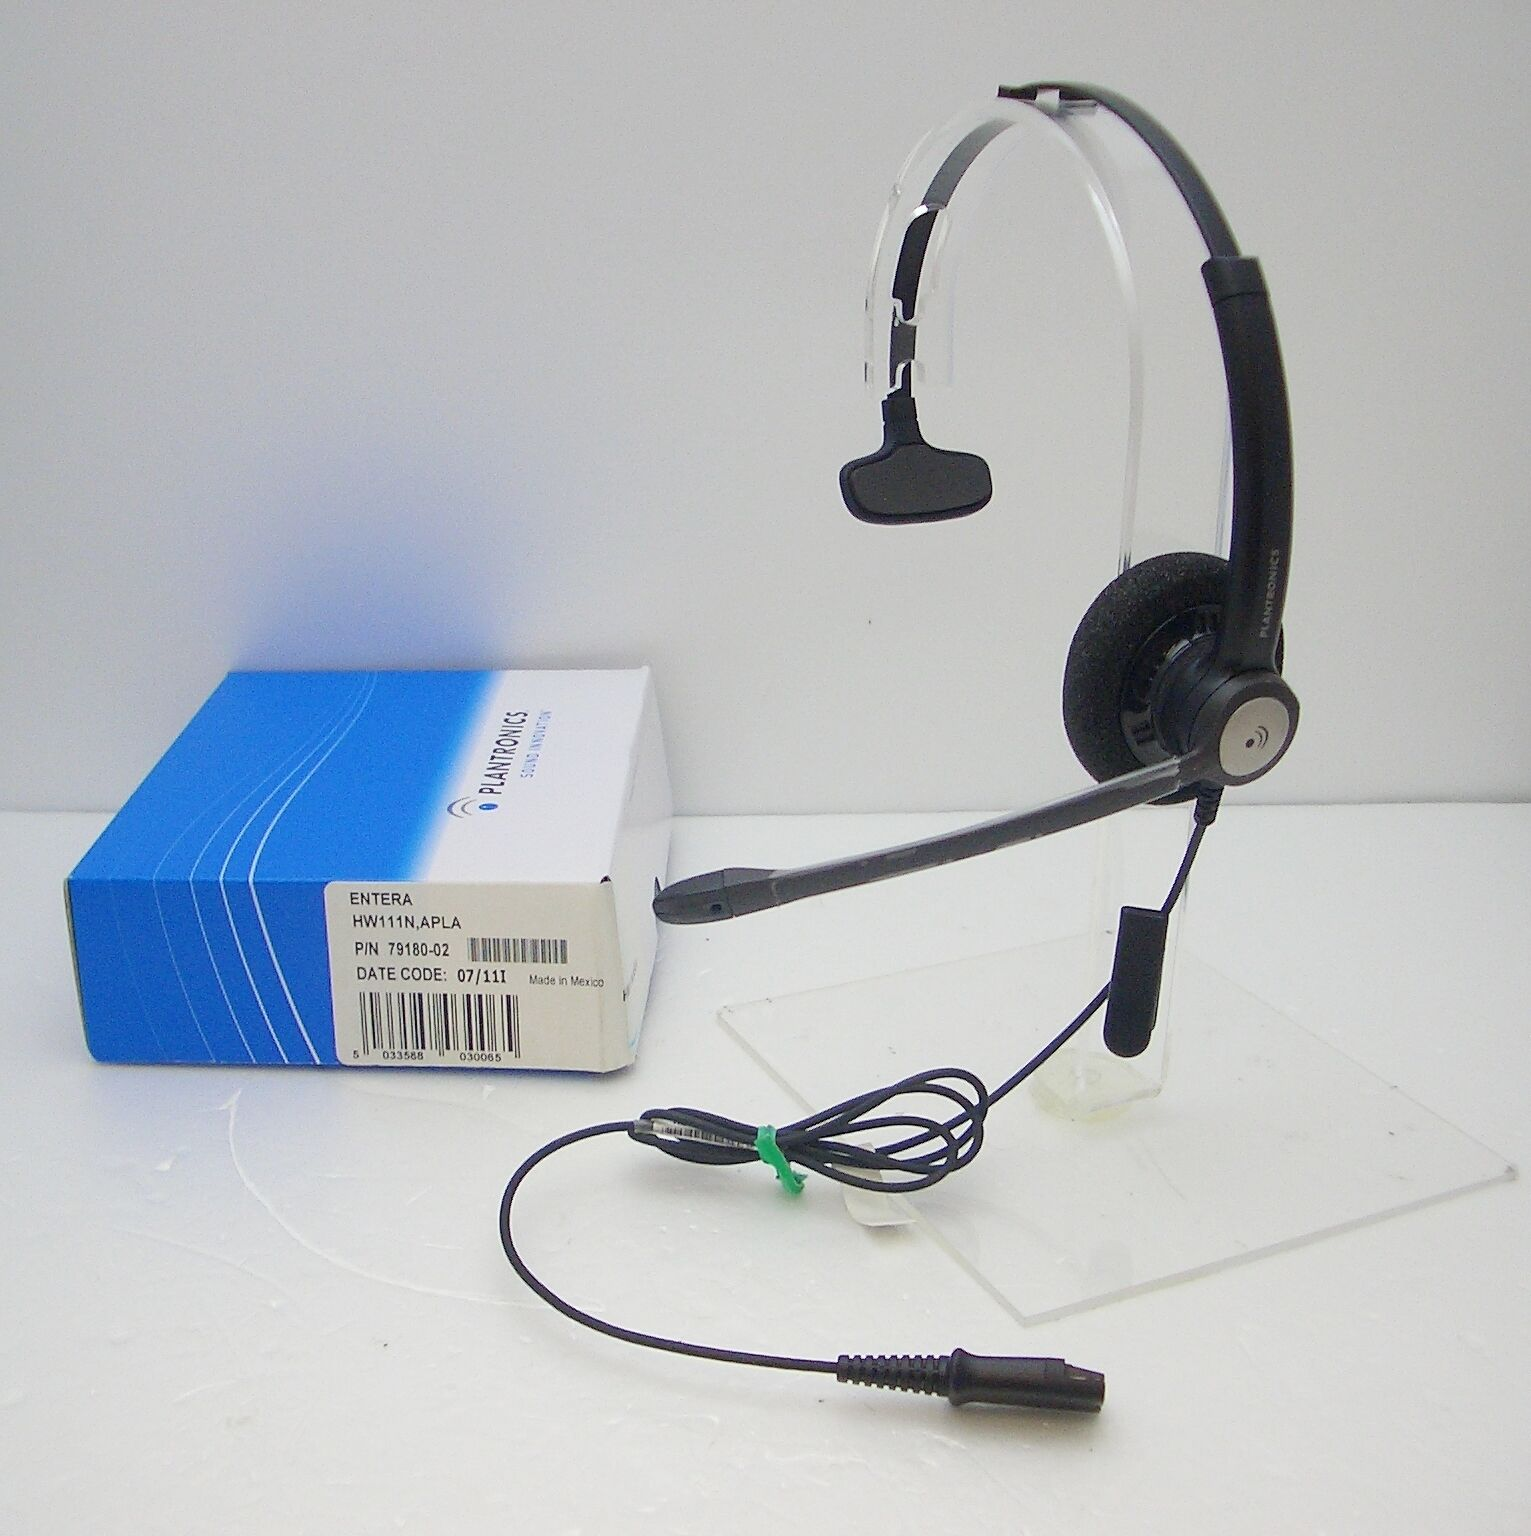 Plantronics Hw111n Mono Noise Canceling Office Phone Qd Headset For M12 M22 Amp 17229132054 Ebay